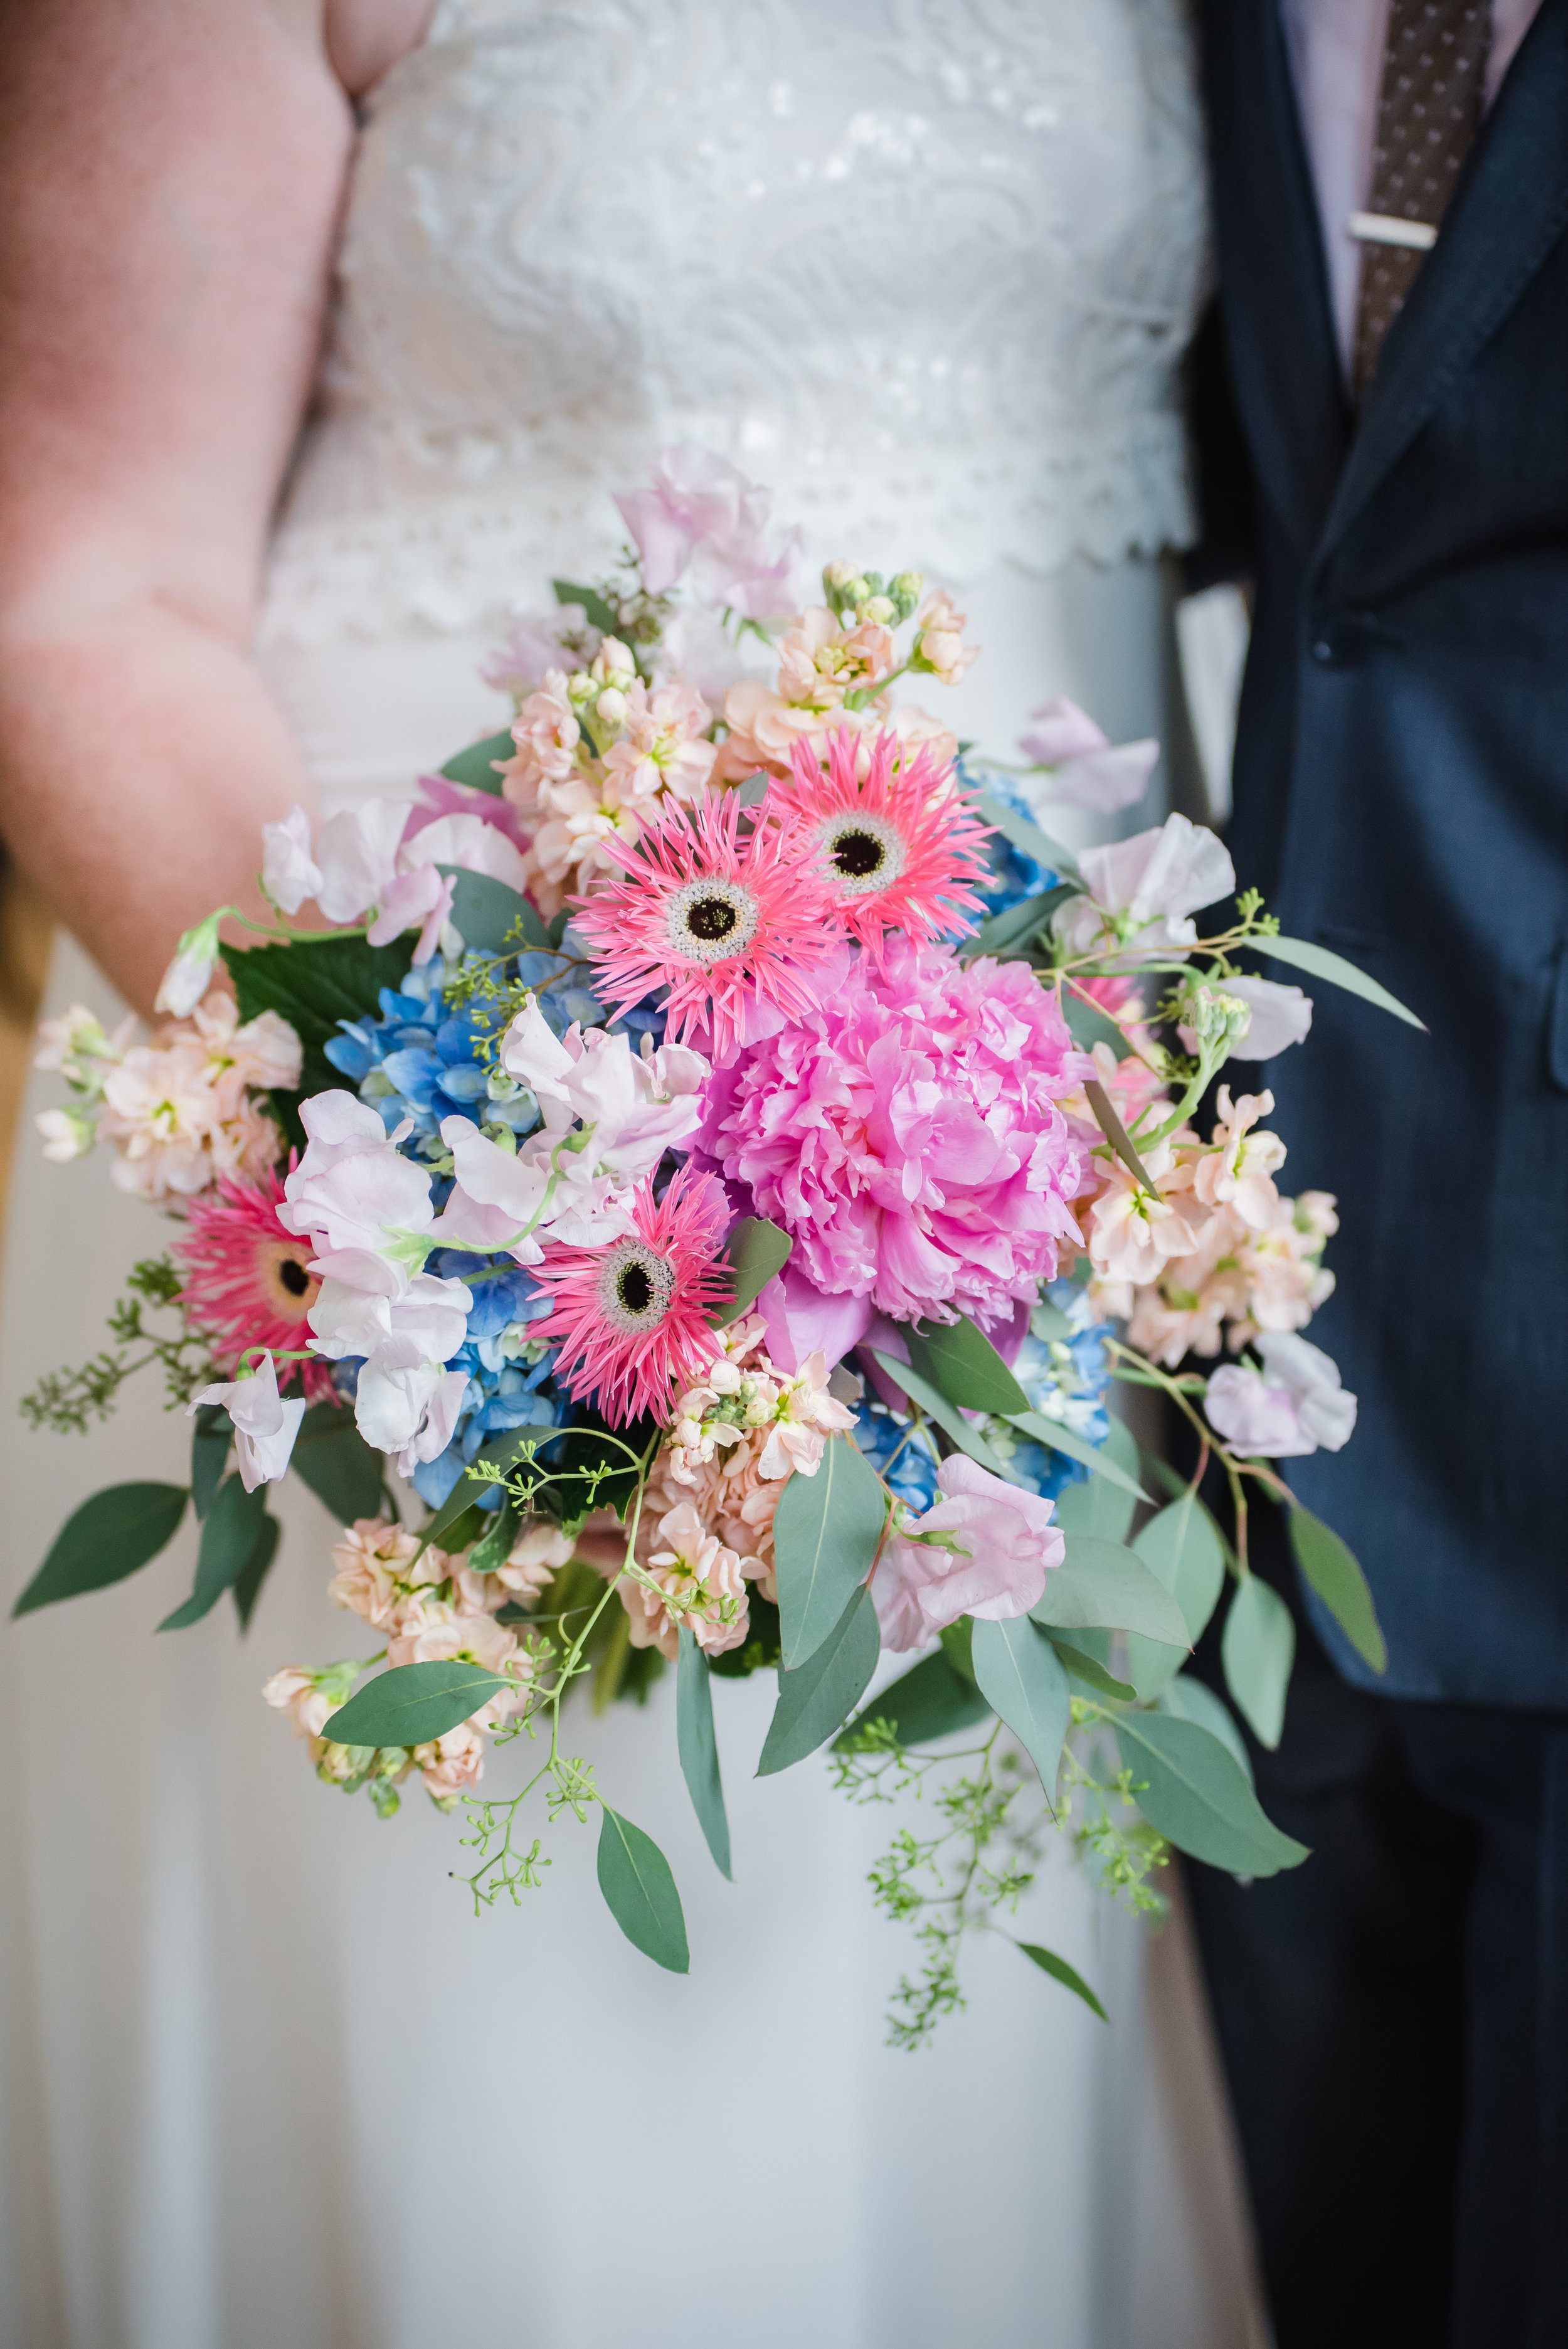 A fun and textural bridal bouquet with strong pinks and bright blues including Hot Pink Gerbera Daisies, Pale Pink Sweetpea, Peonies, & Hydrangea.  (Angelina Rose Photography)